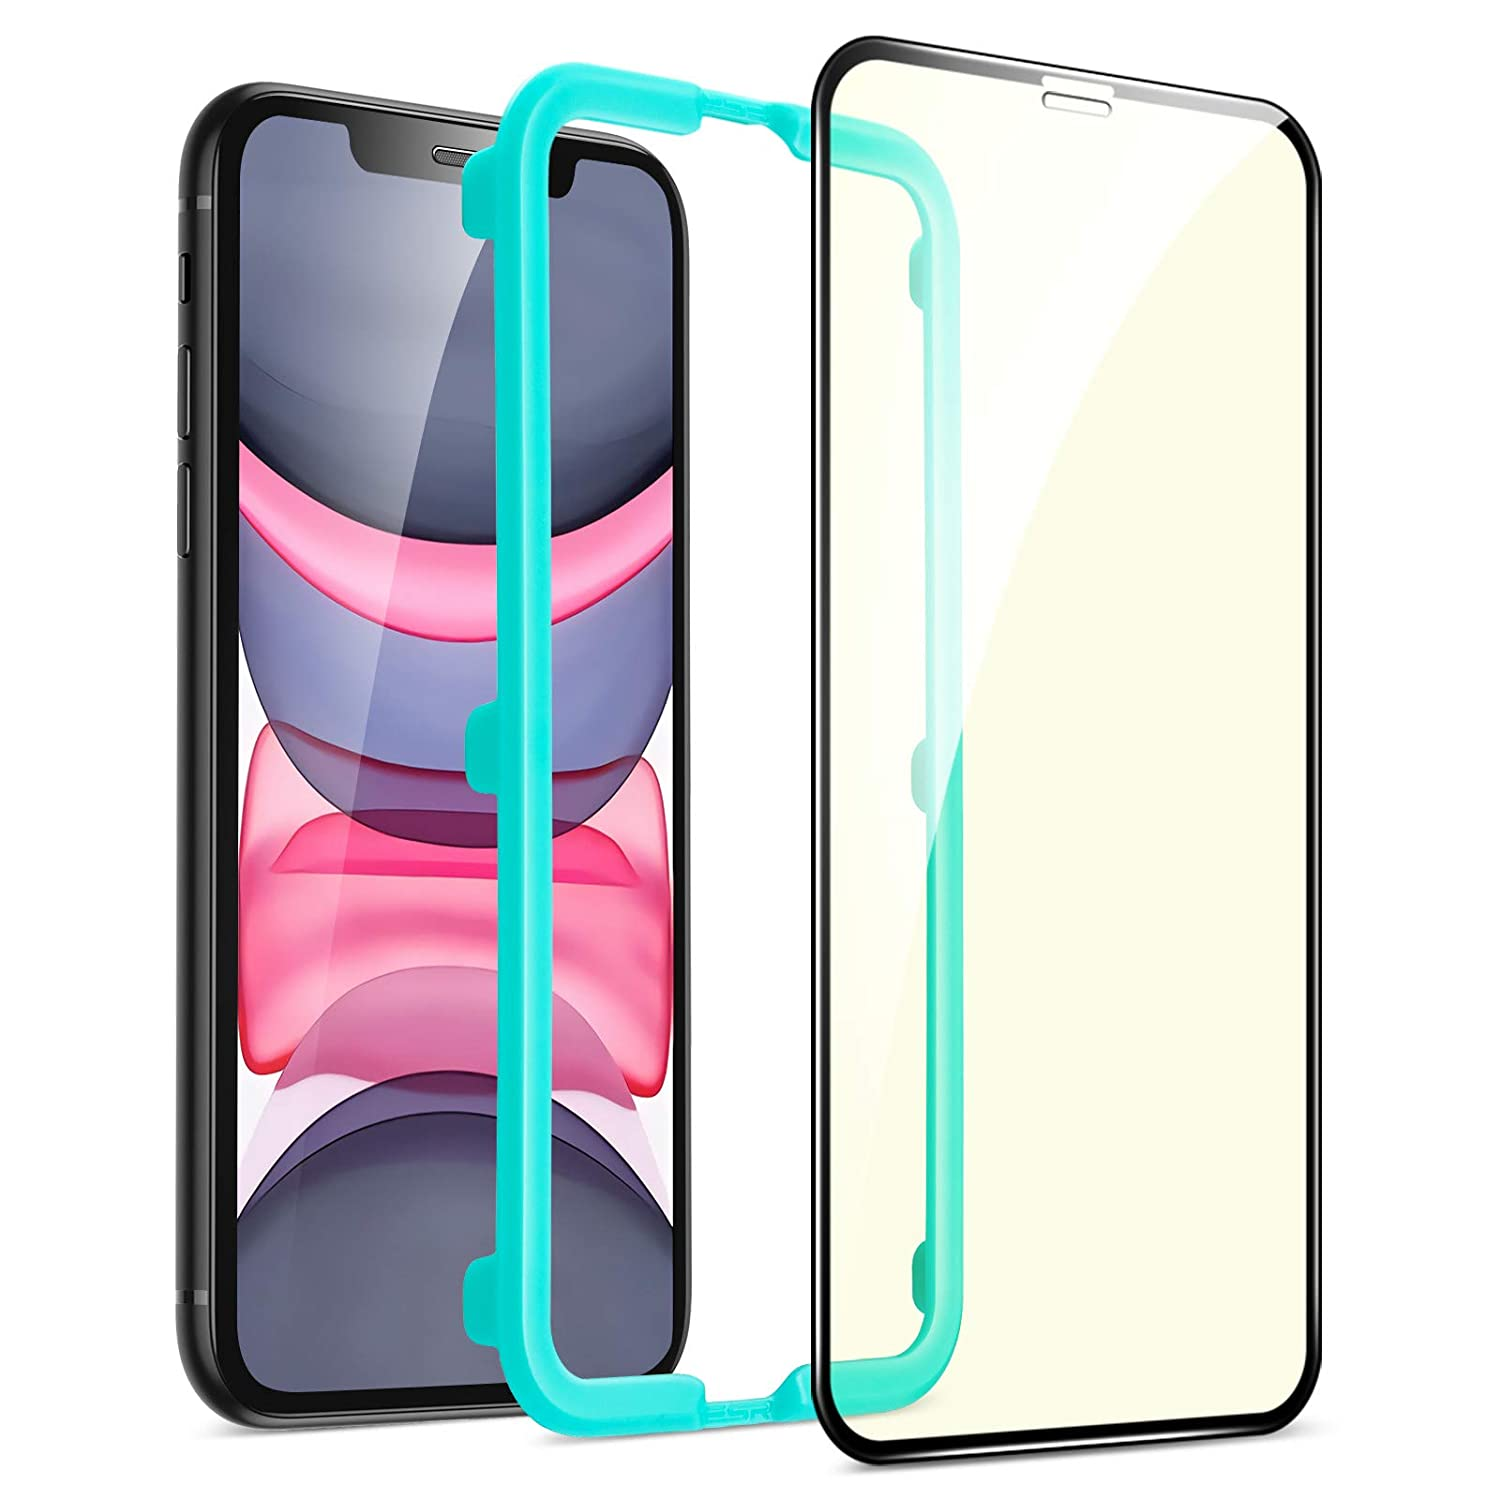 ESR Premium Quality Full Cover Anti Blue Light, Eye Protection Tempered Glass iPhone XR/11 (4894240067925)